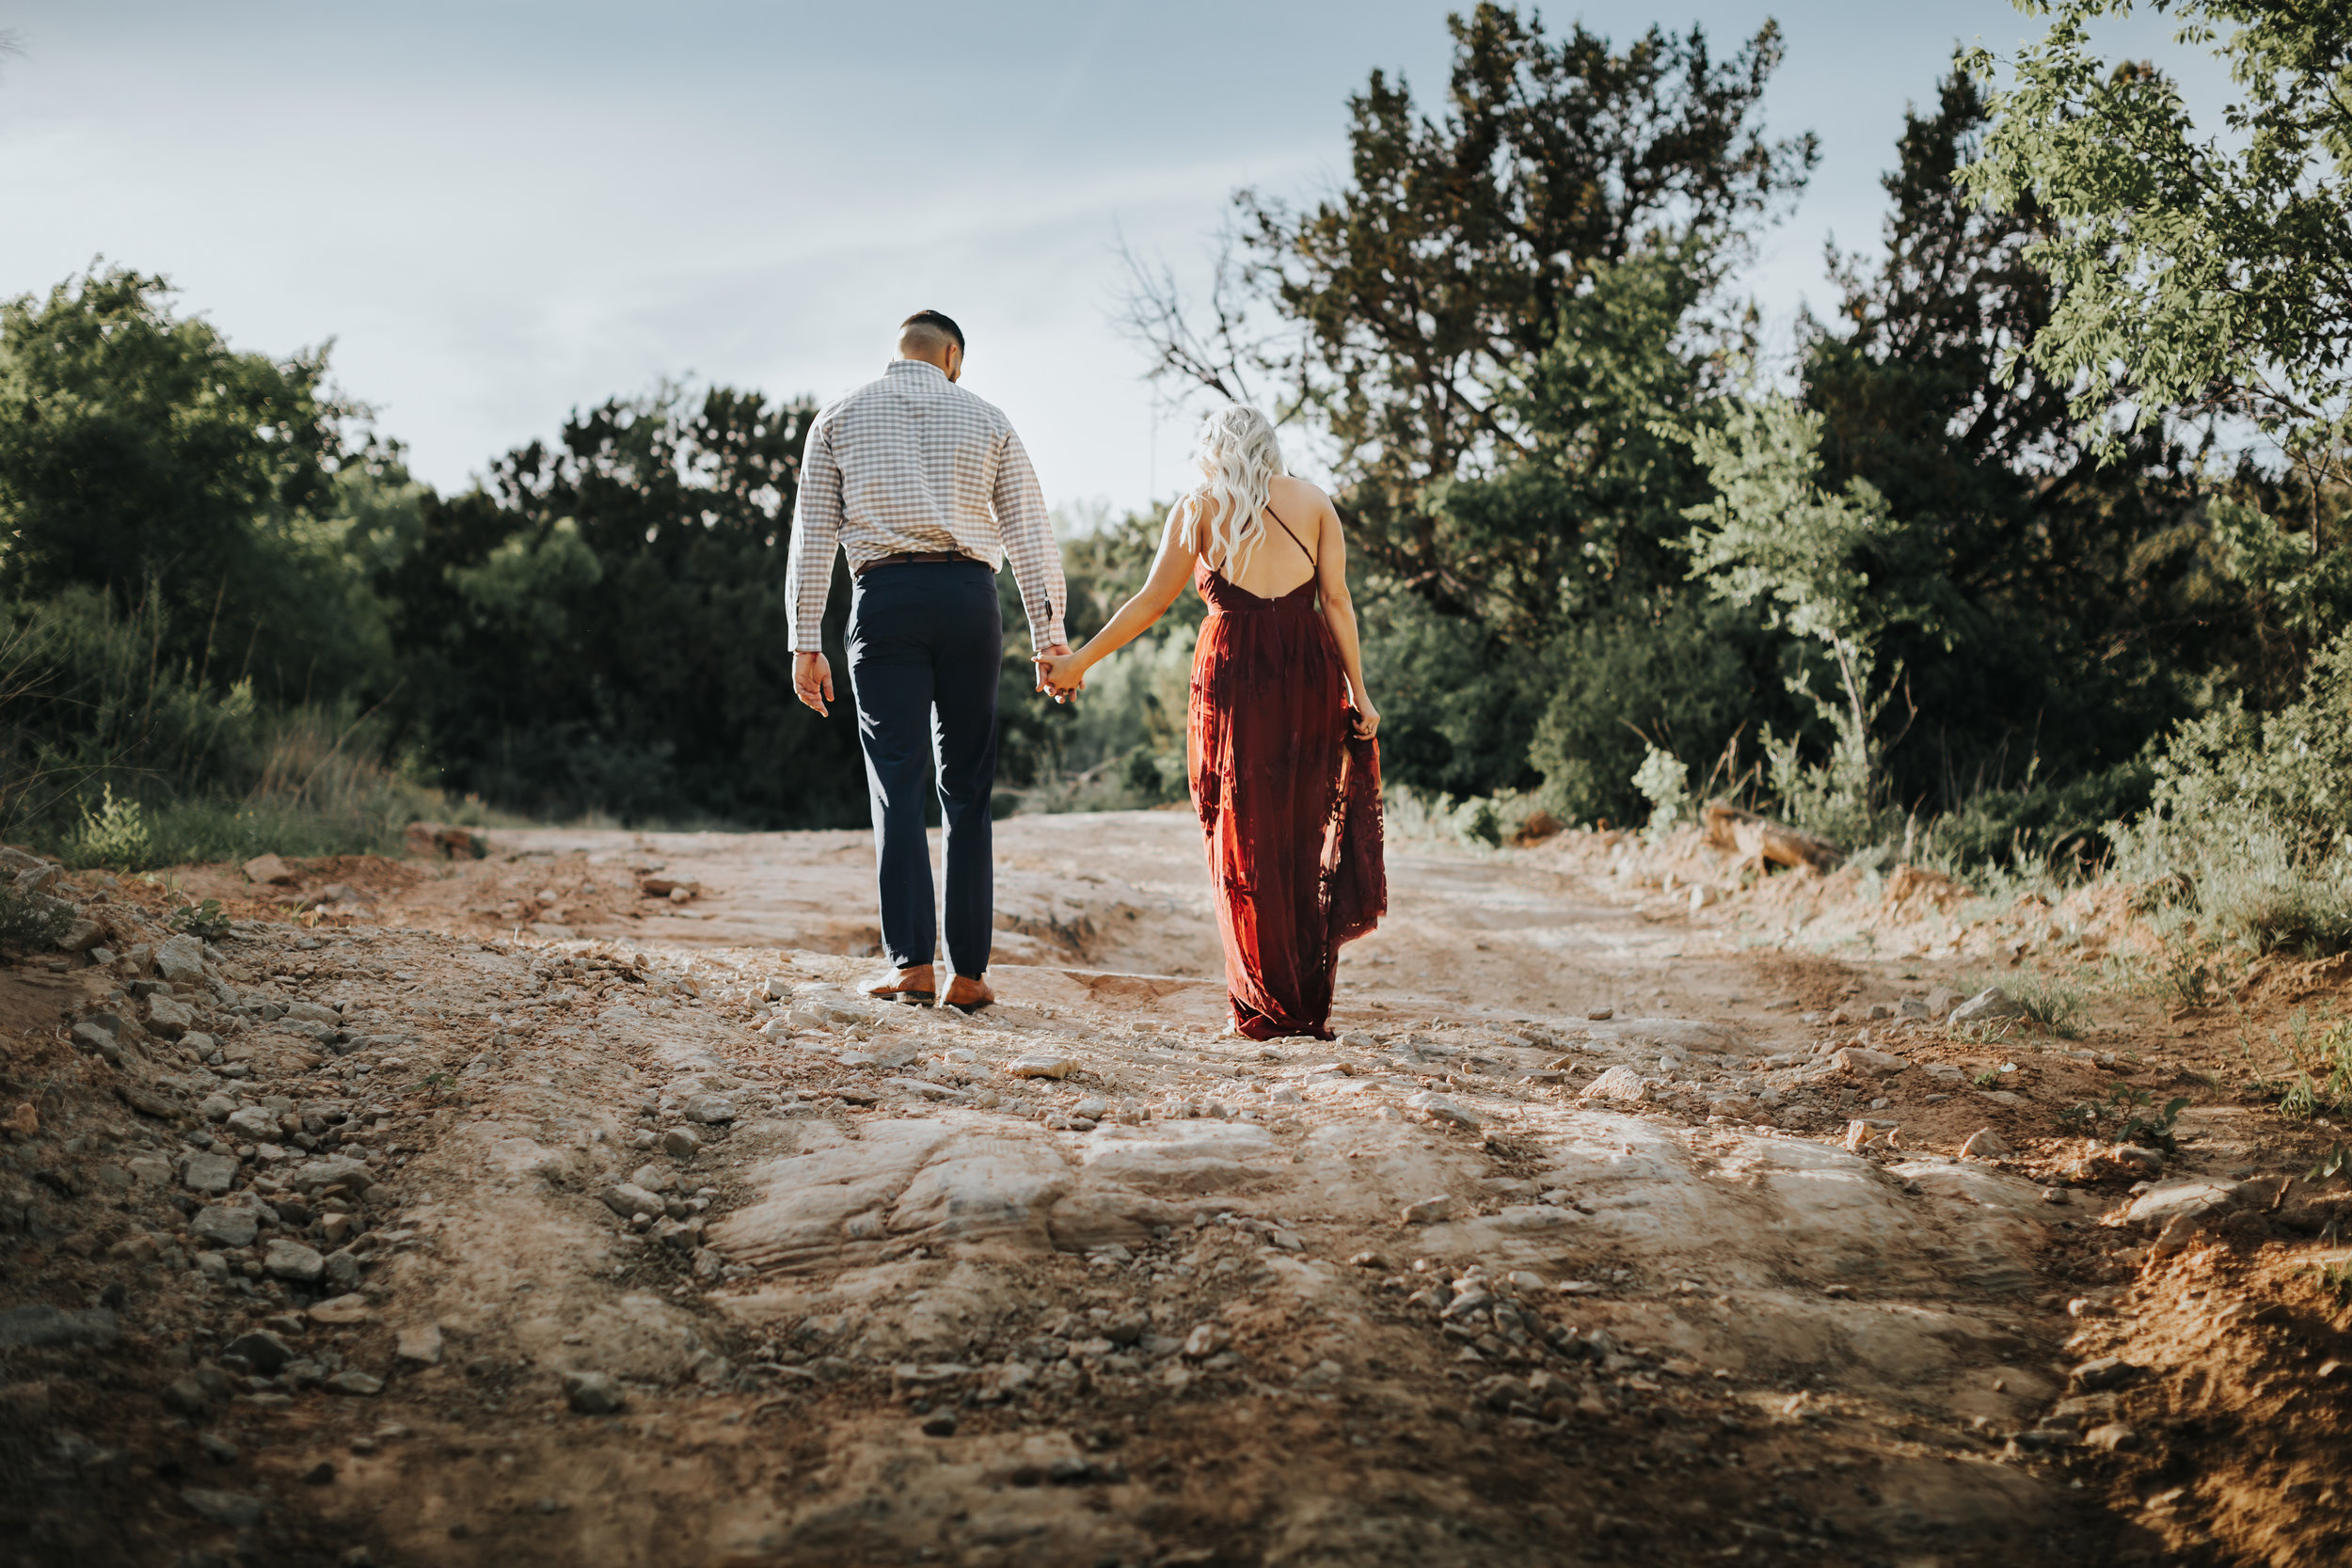 Walking away into the future hand in hand engaged couple walks uphill #engagementphotos #riverfalls #engaged #personality #amarillotexas #engagementphotographer #lifestylephotos #amarillophotographer #locationchoice #texasengagementphotos #engagment #tealawardphotography #wildliferefuge